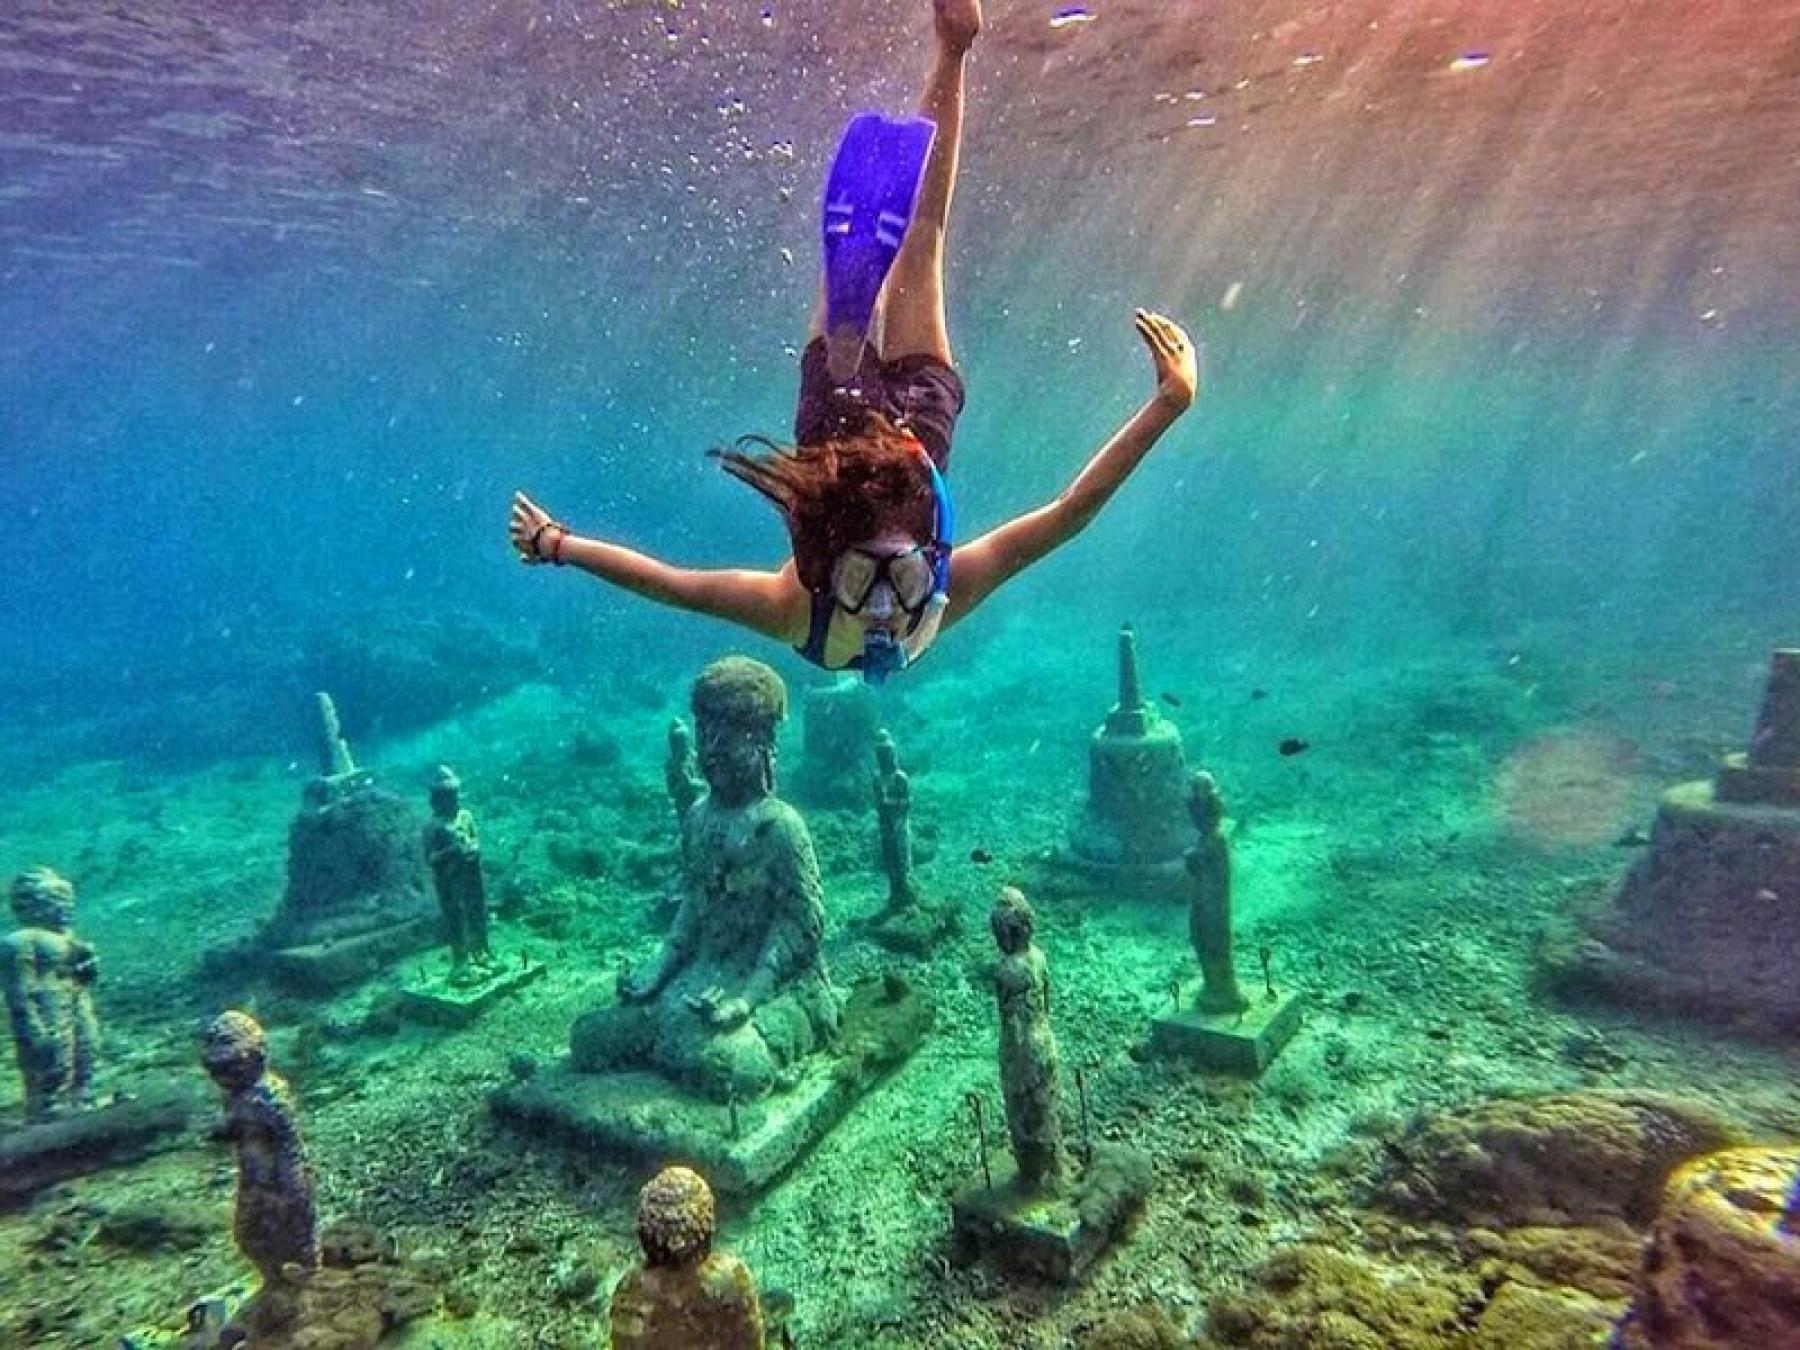 Let's experience the weekend finding the underwater buddhas & manta rays starting at NUSA PENIDA ISLAND, Jalan Pantai, Kutampi Kaler, Klungkung Regency, Bali, Indonesia